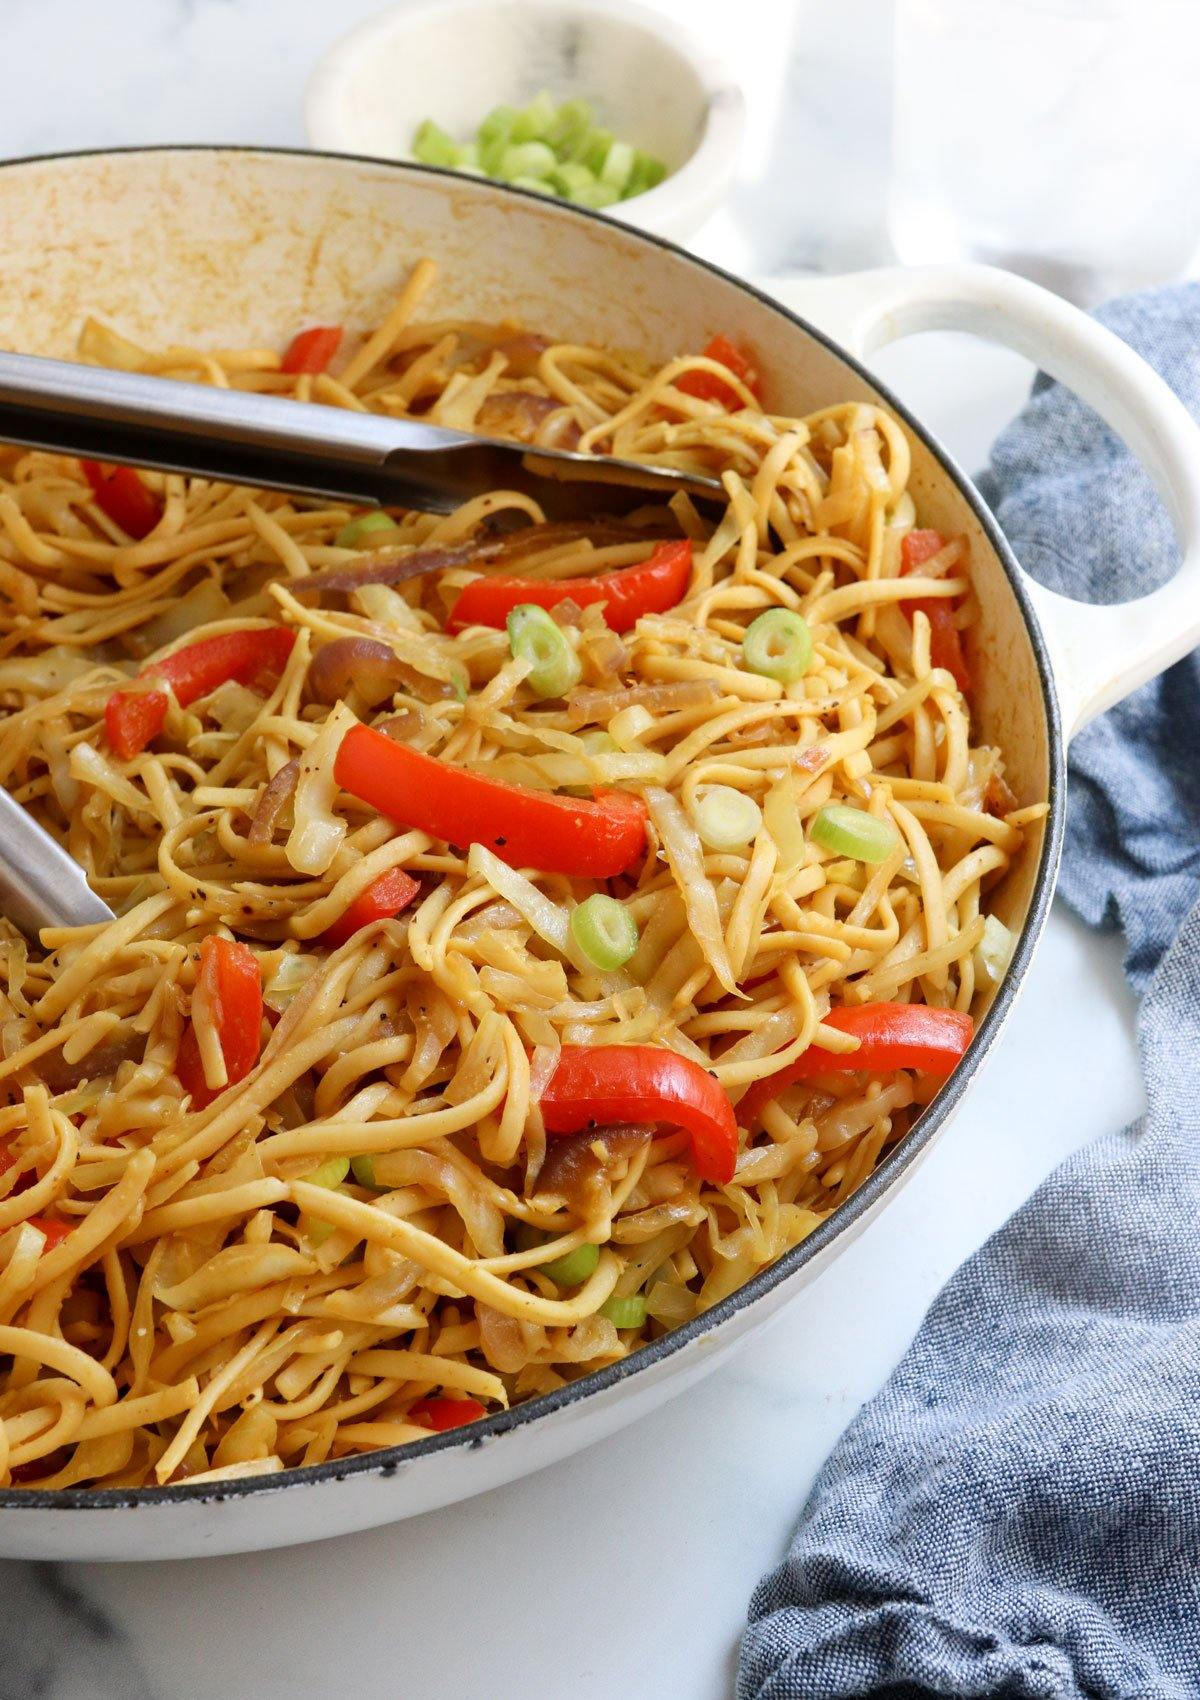 singapore noodles in pan with tongs